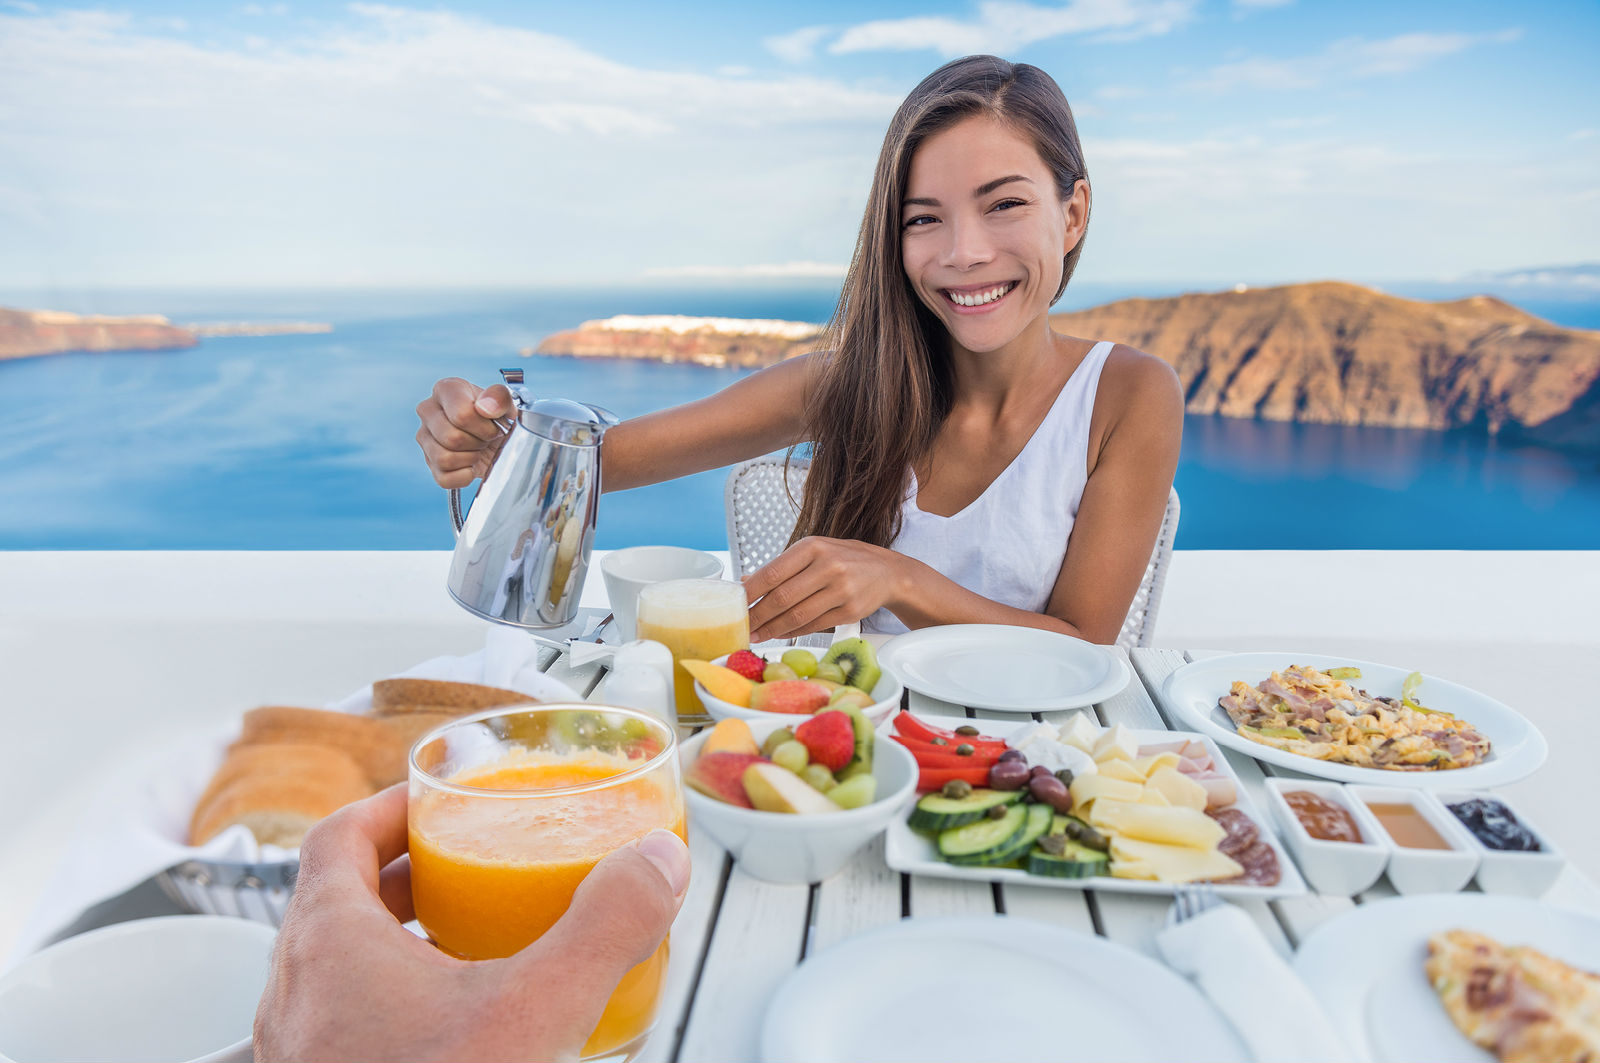 Love Traveling? Protect Your Health While Quenching Your Wanderlust